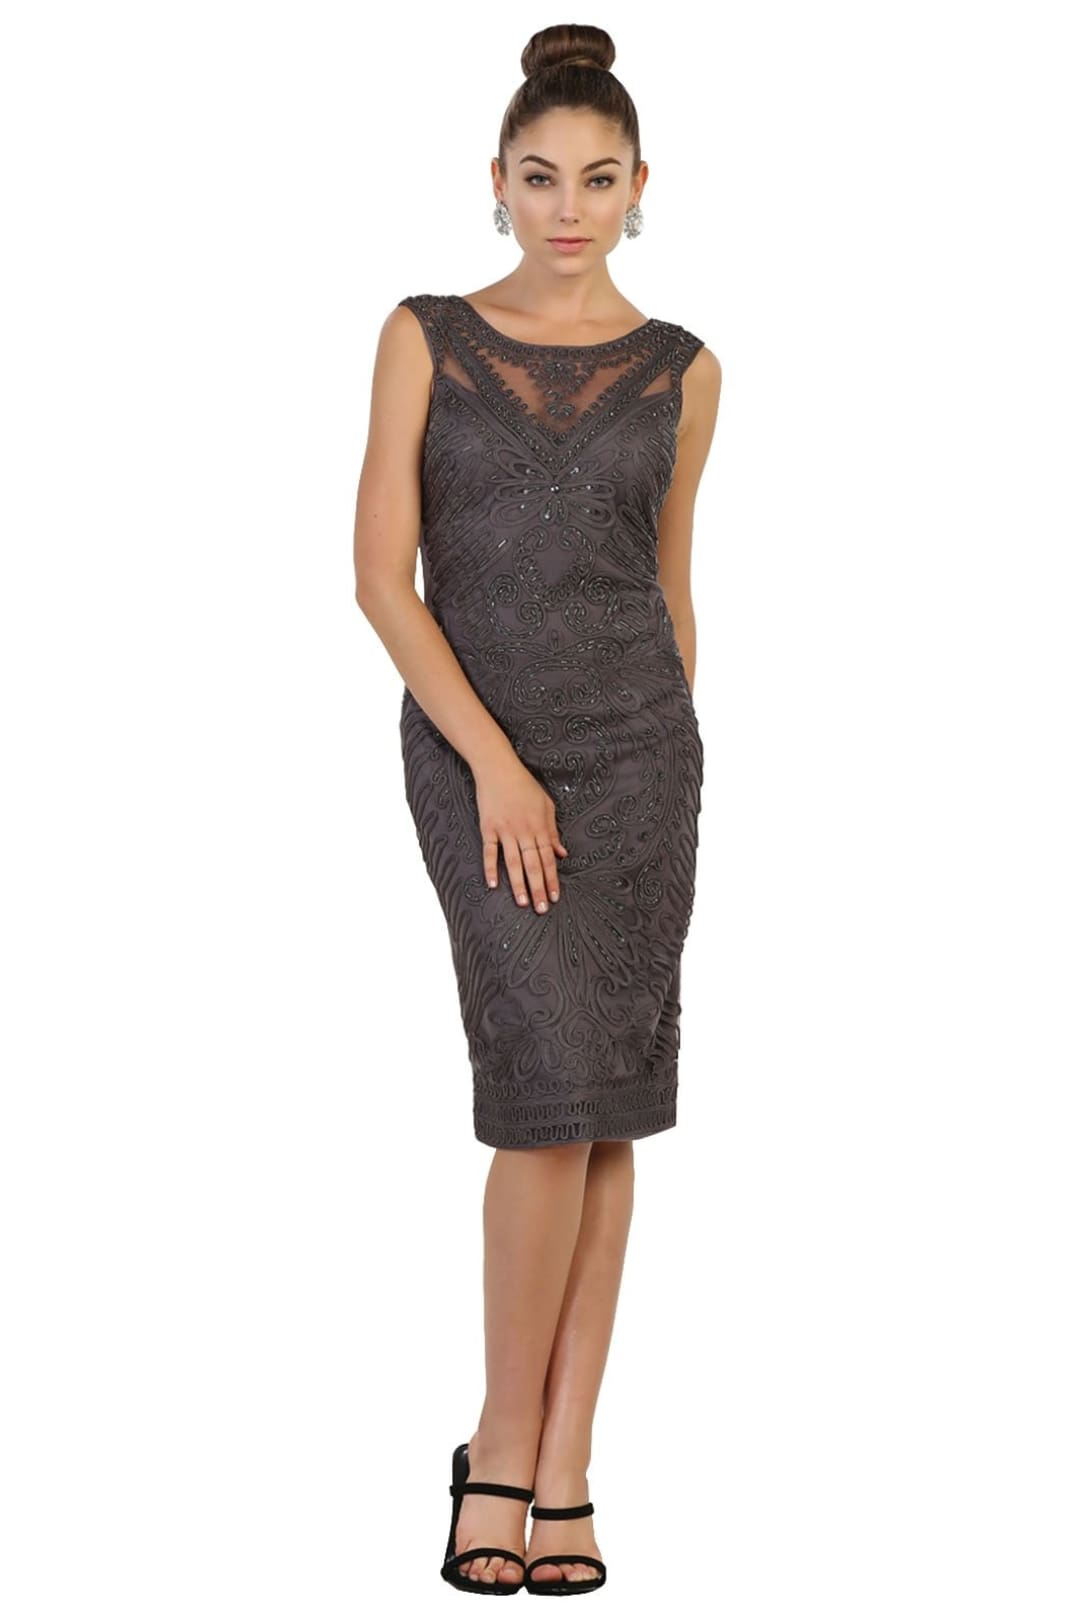 Elegant Cocktail Dress - Charcoal Gray / 3XL